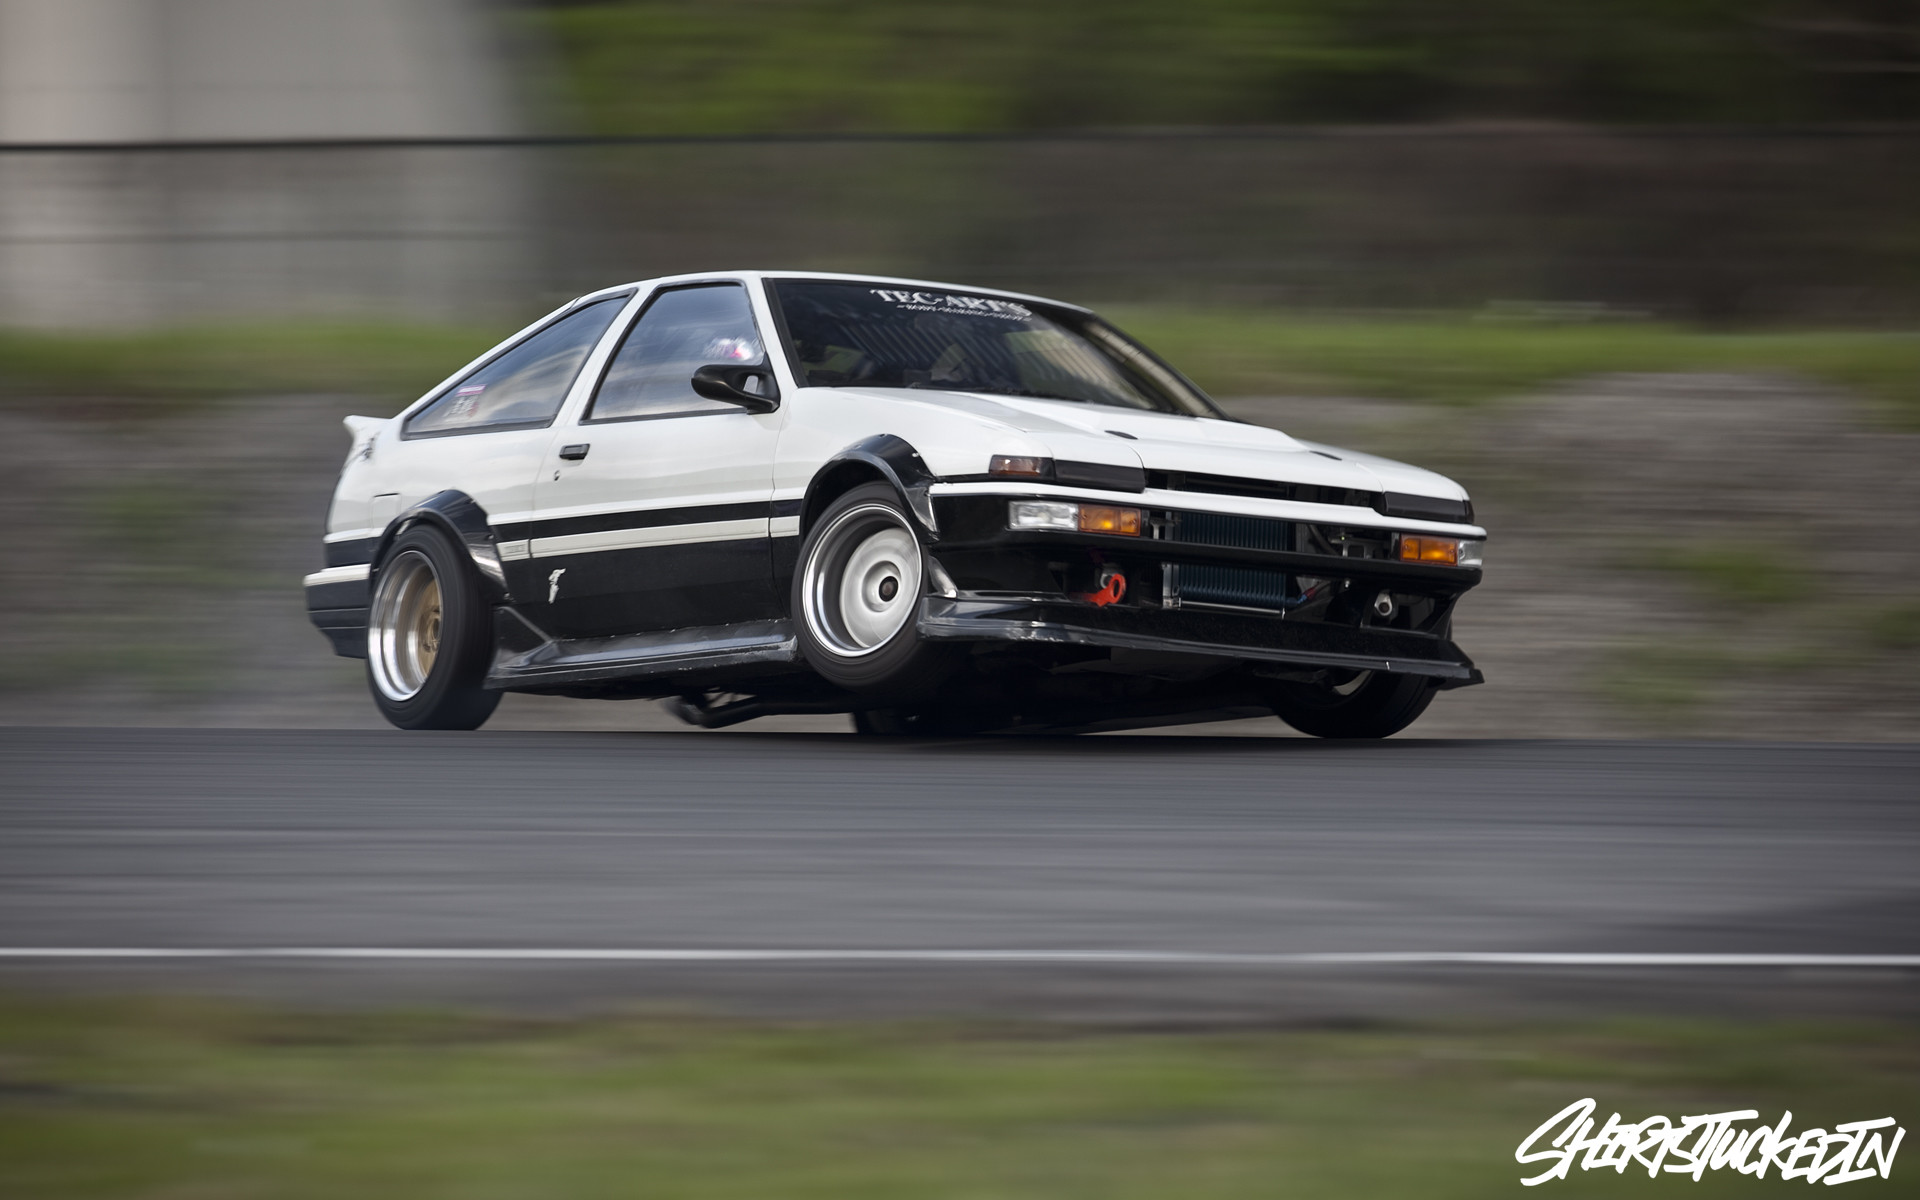 Ae86 drift wallpaper 79 images - Ae86 initial d wallpaper ...